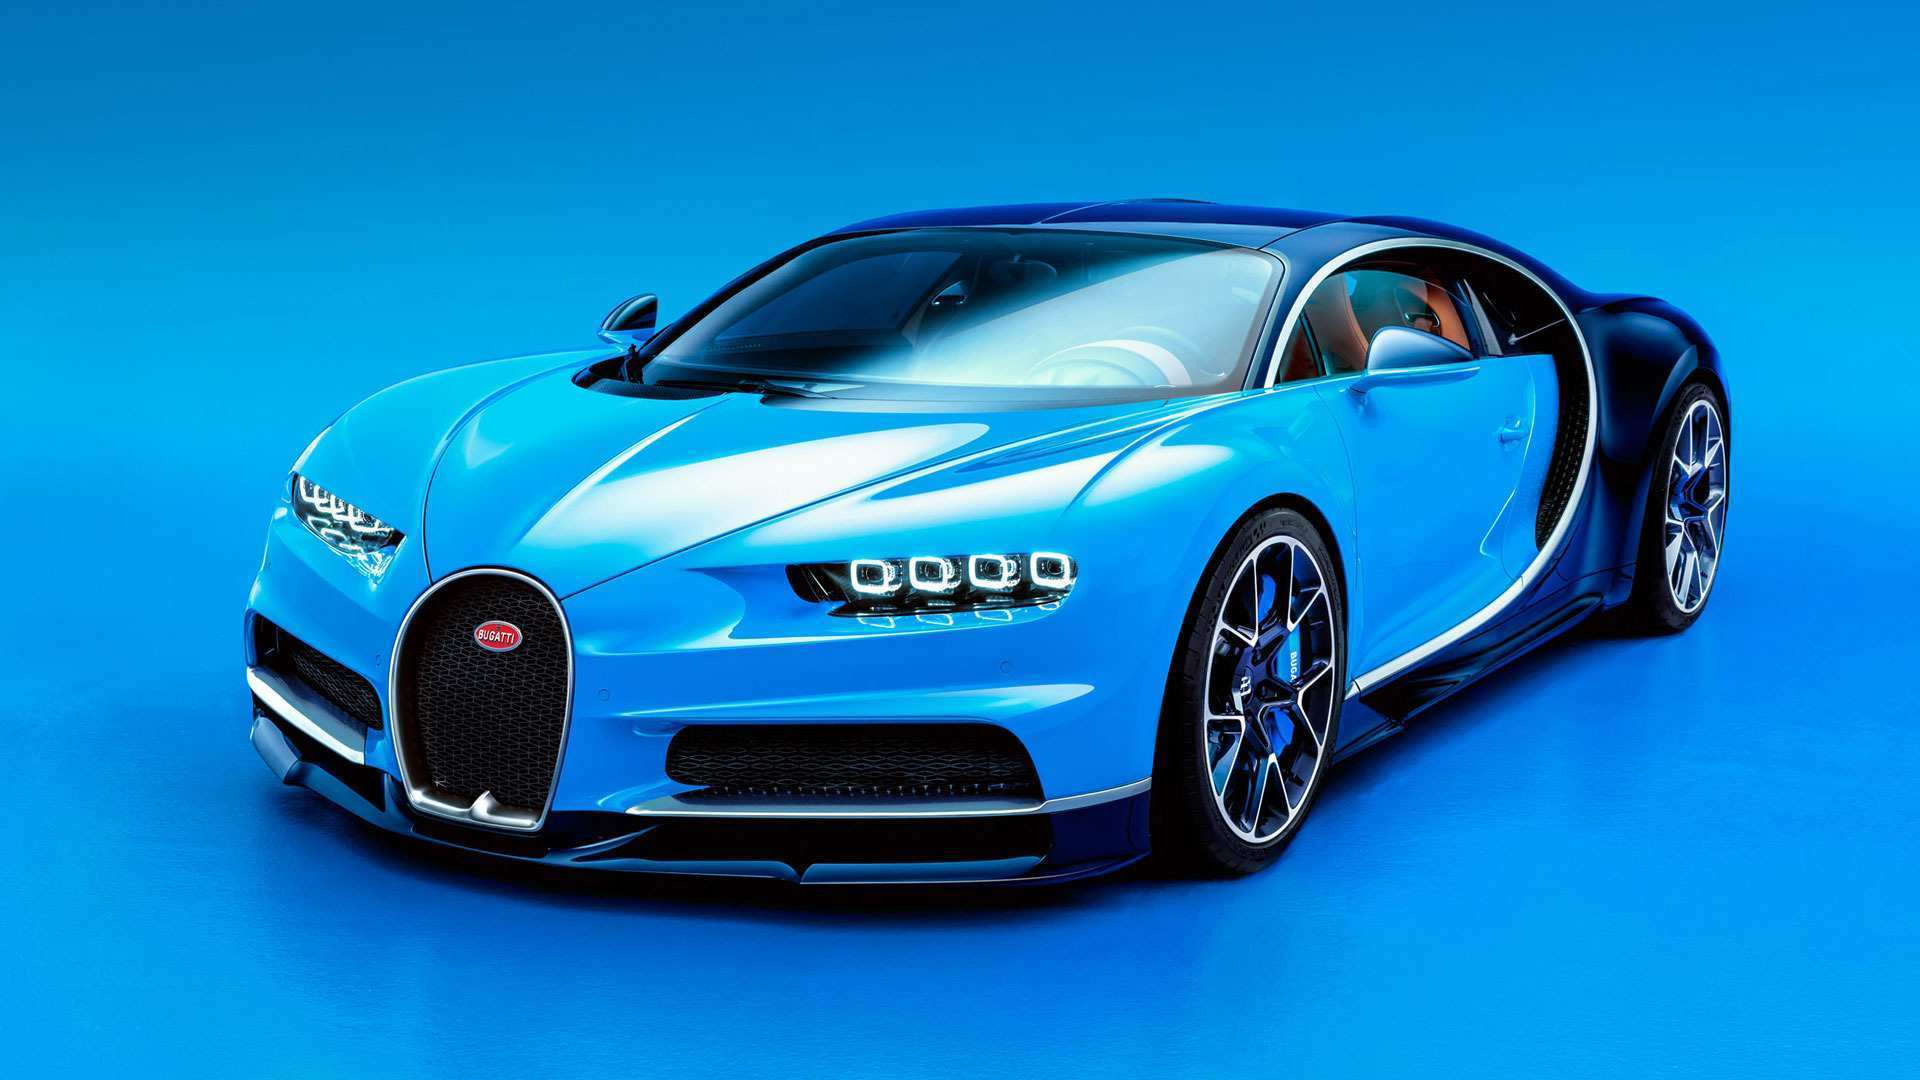 97 New 2020 Bugatti Veyron Performance